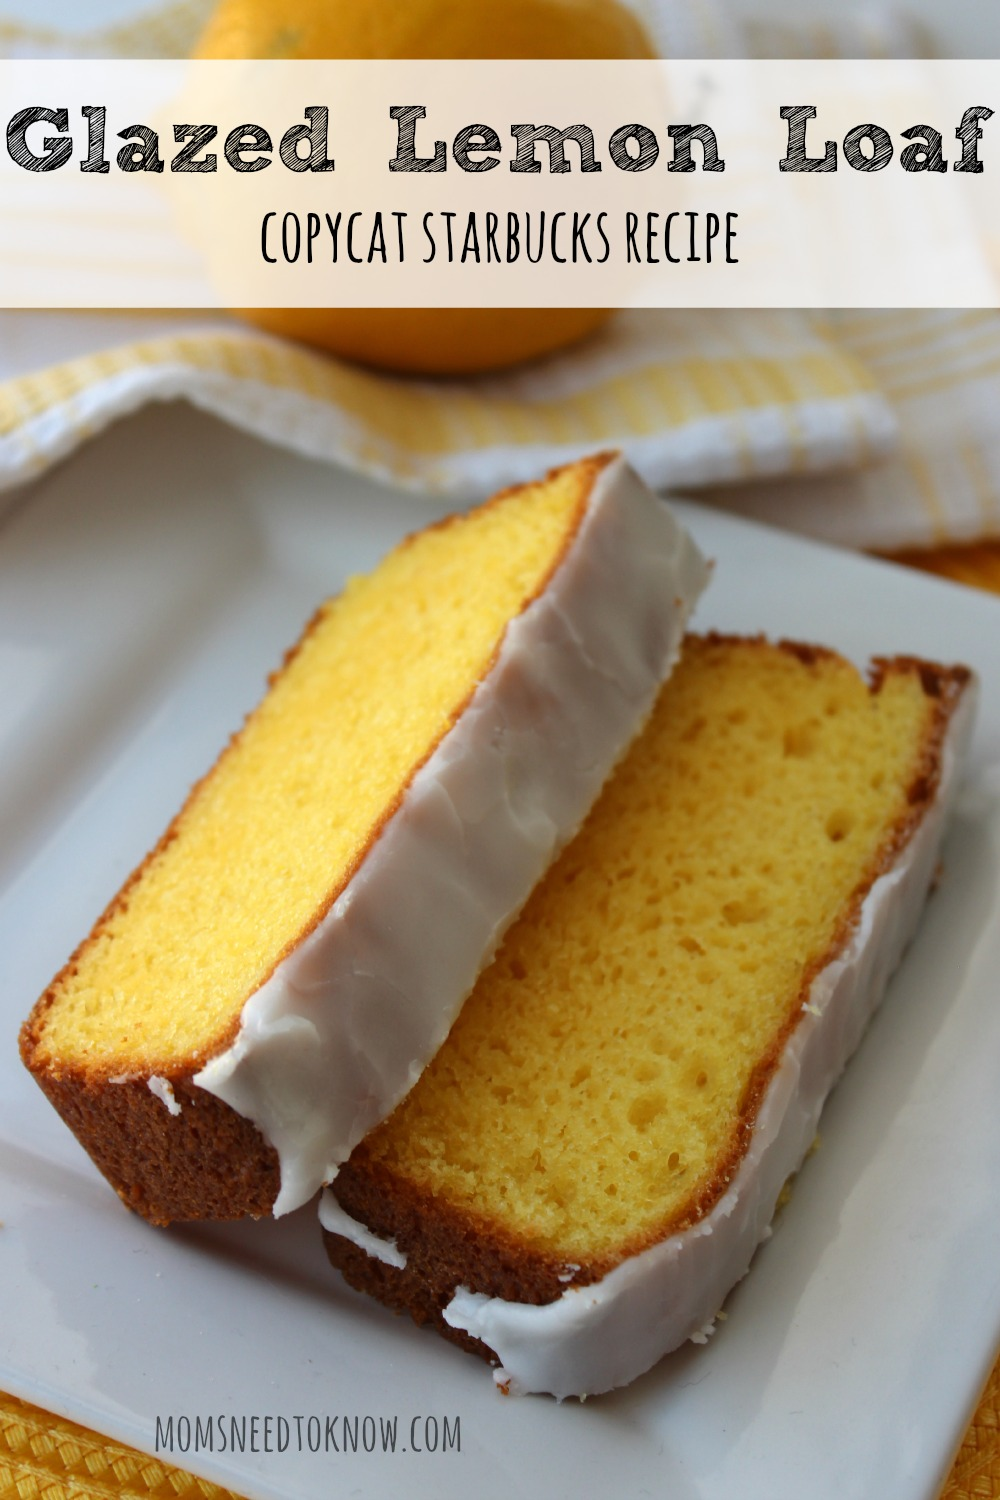 Glazed Lemon Loaf - Copycat Starbucks Recipe